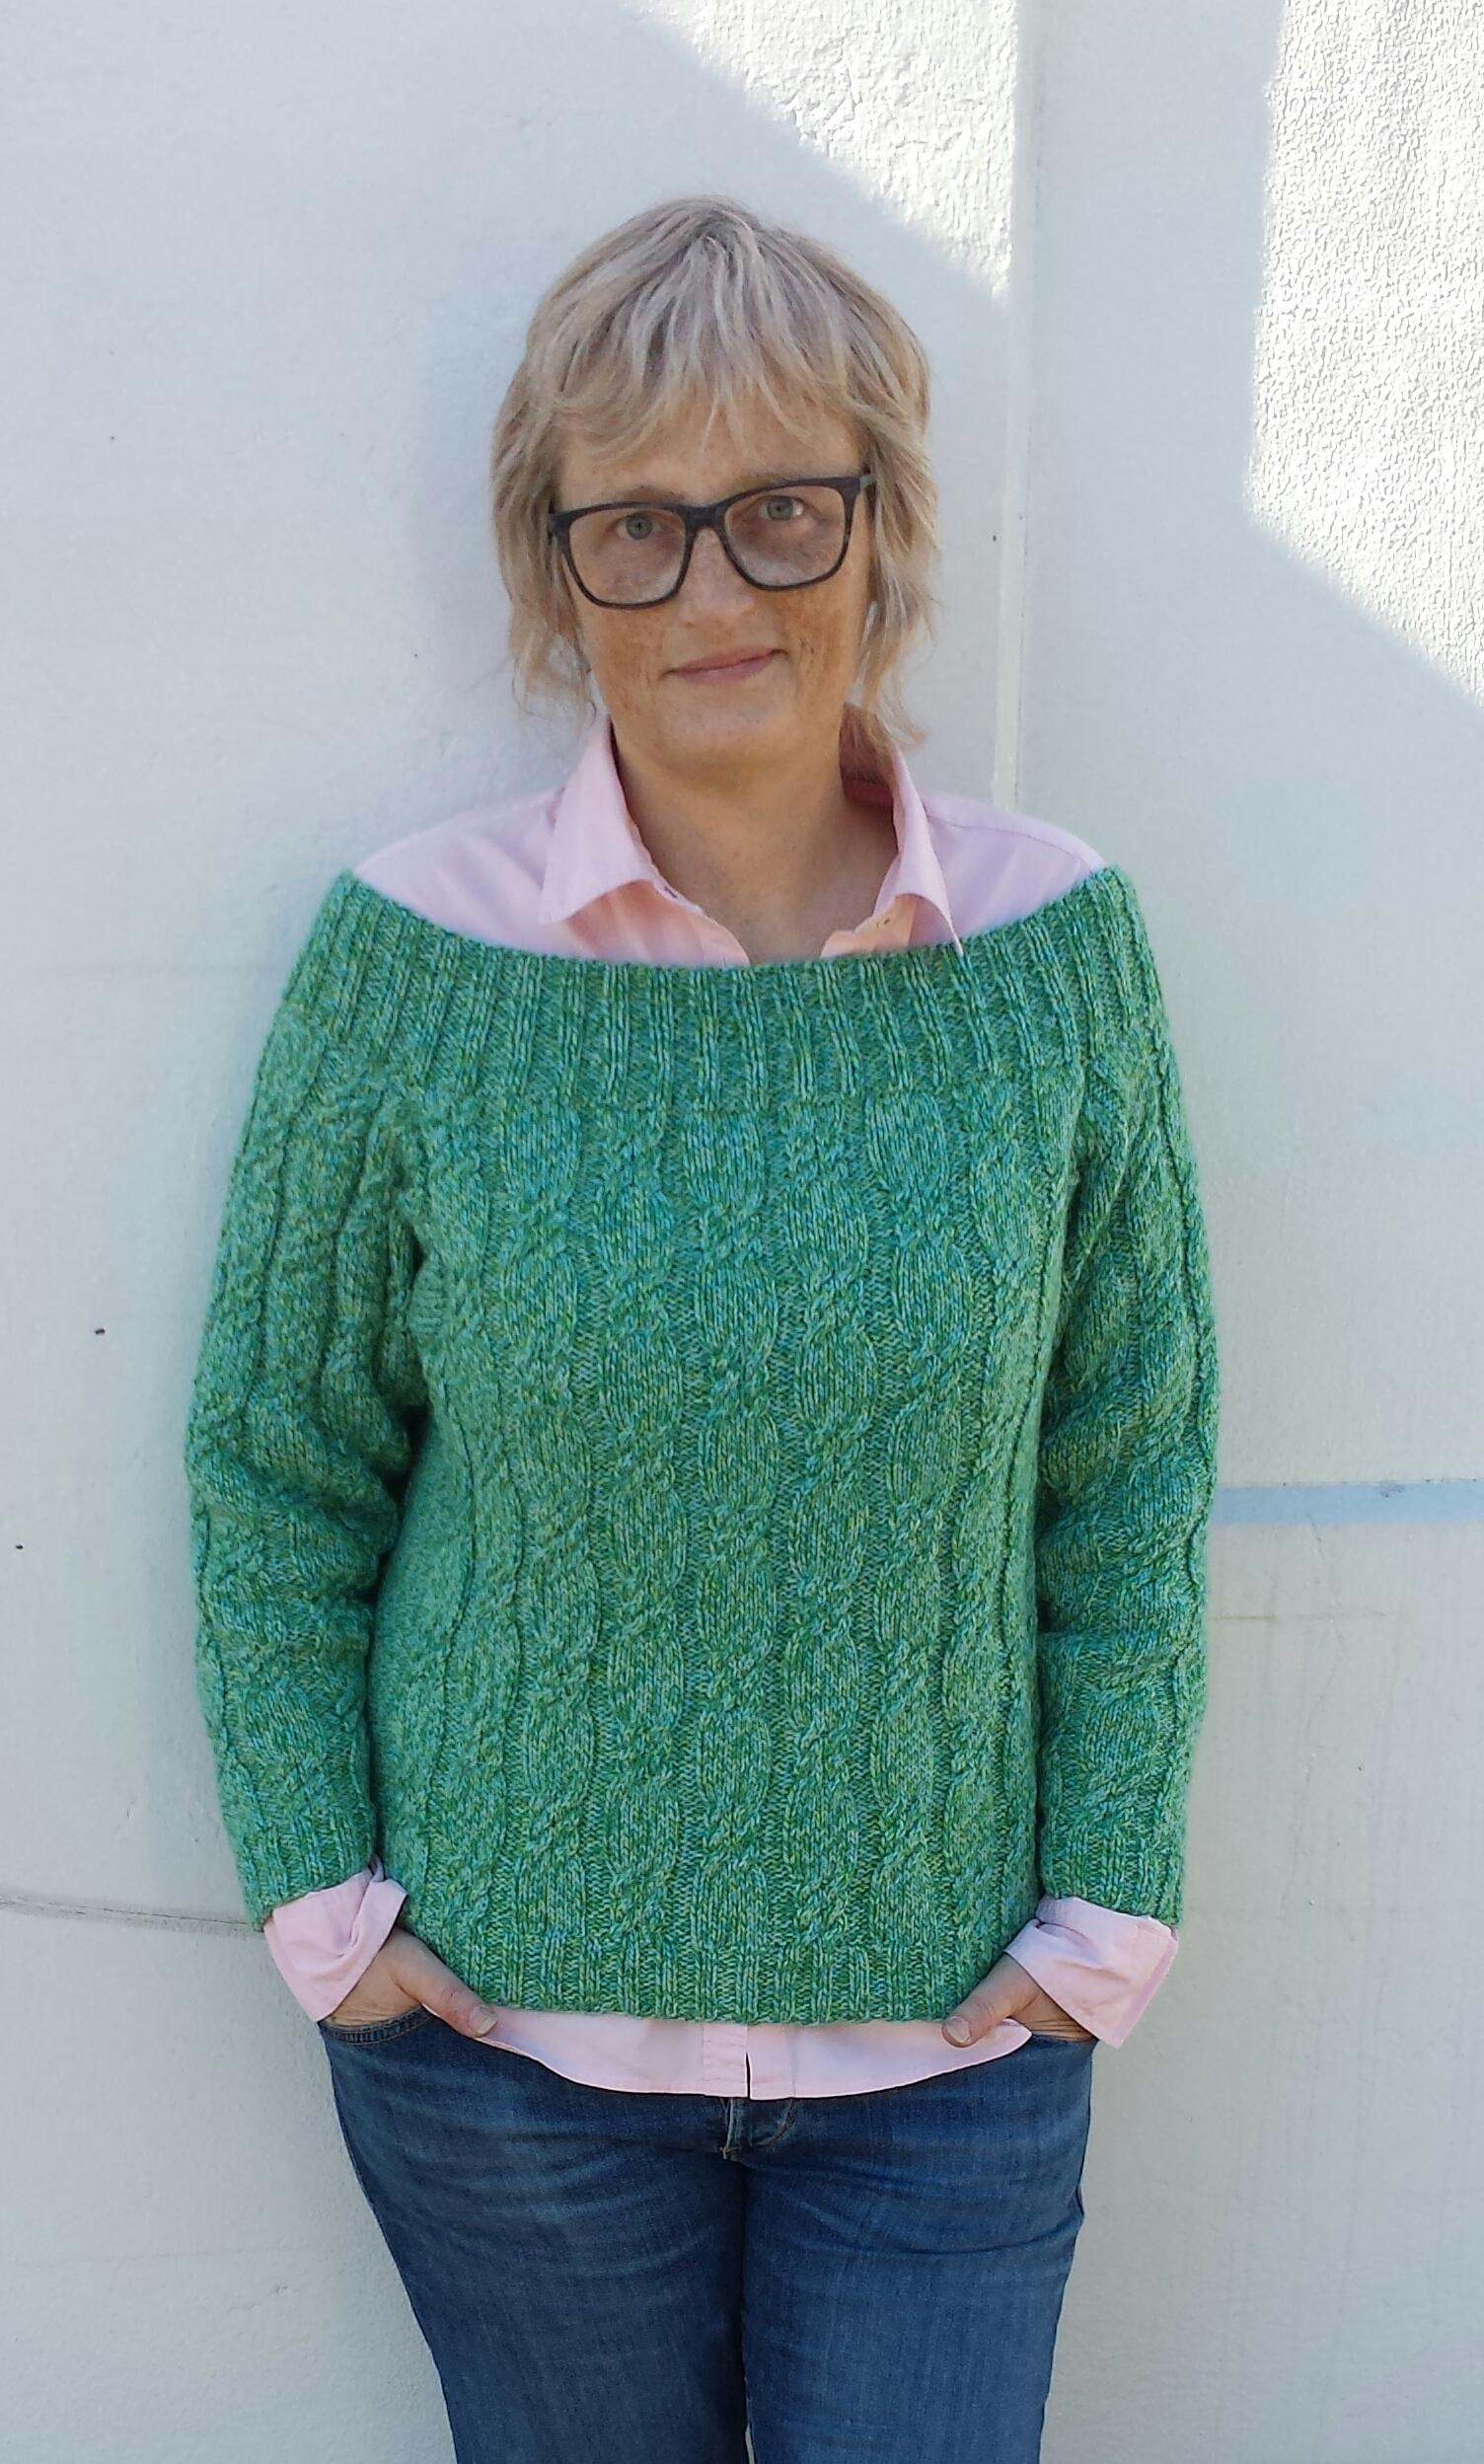 Off The Shoulder Sweater Knitting Pattern Off The Shoulder Sweater Knitting